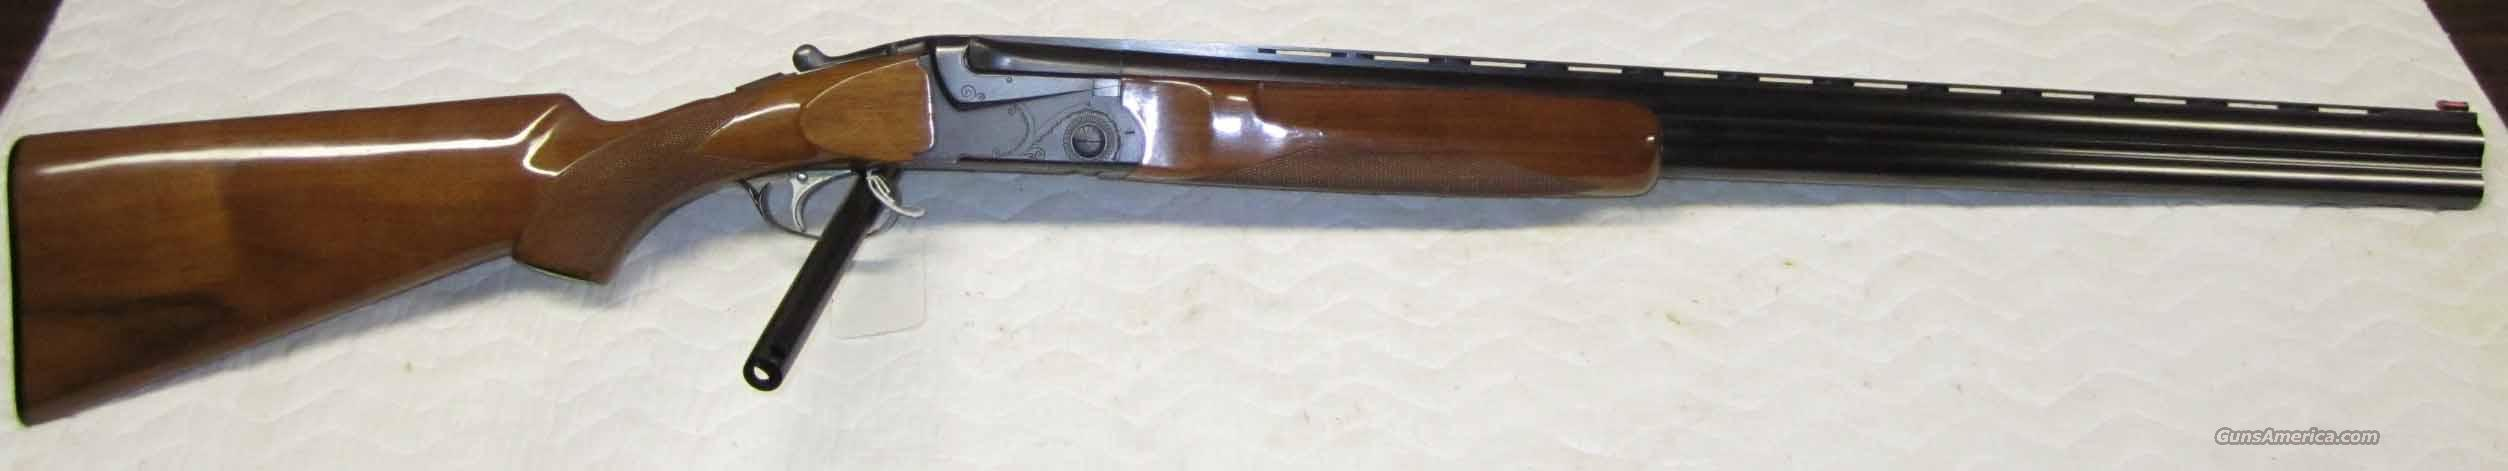 ITHACA/SKB MODEL 500 12 GAUGE  Guns > Shotguns > SKB Shotguns > Trap/Skeet